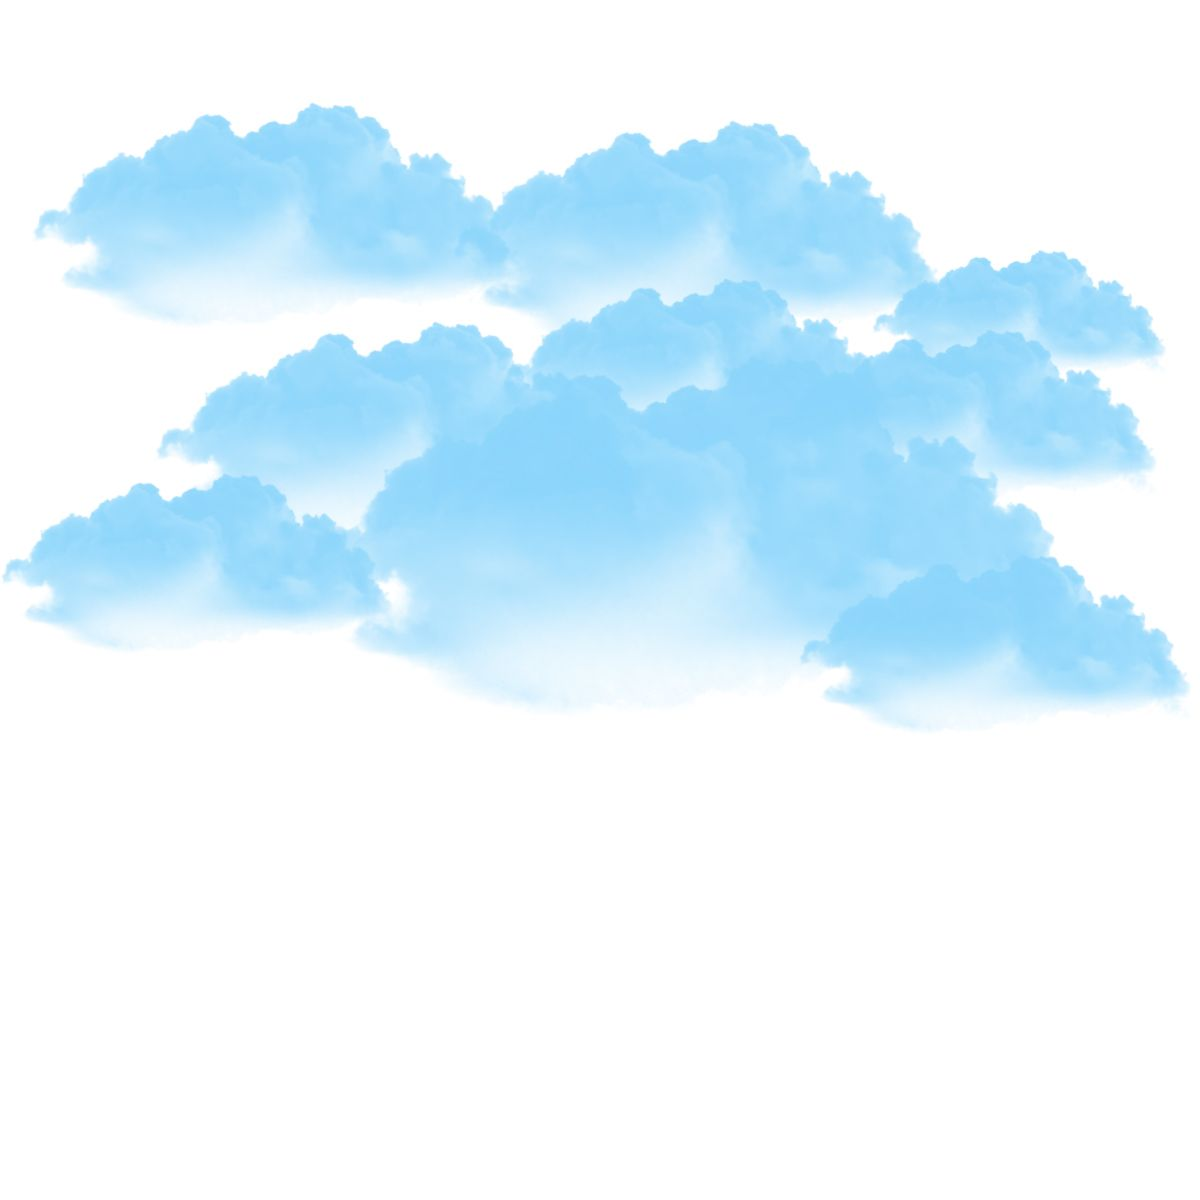 Free Download High Quality Cloud Png Transparent With No Background Its A Good Png Clouds It Is Best To Use In Making White Board Animation Objek Gambar Gambar